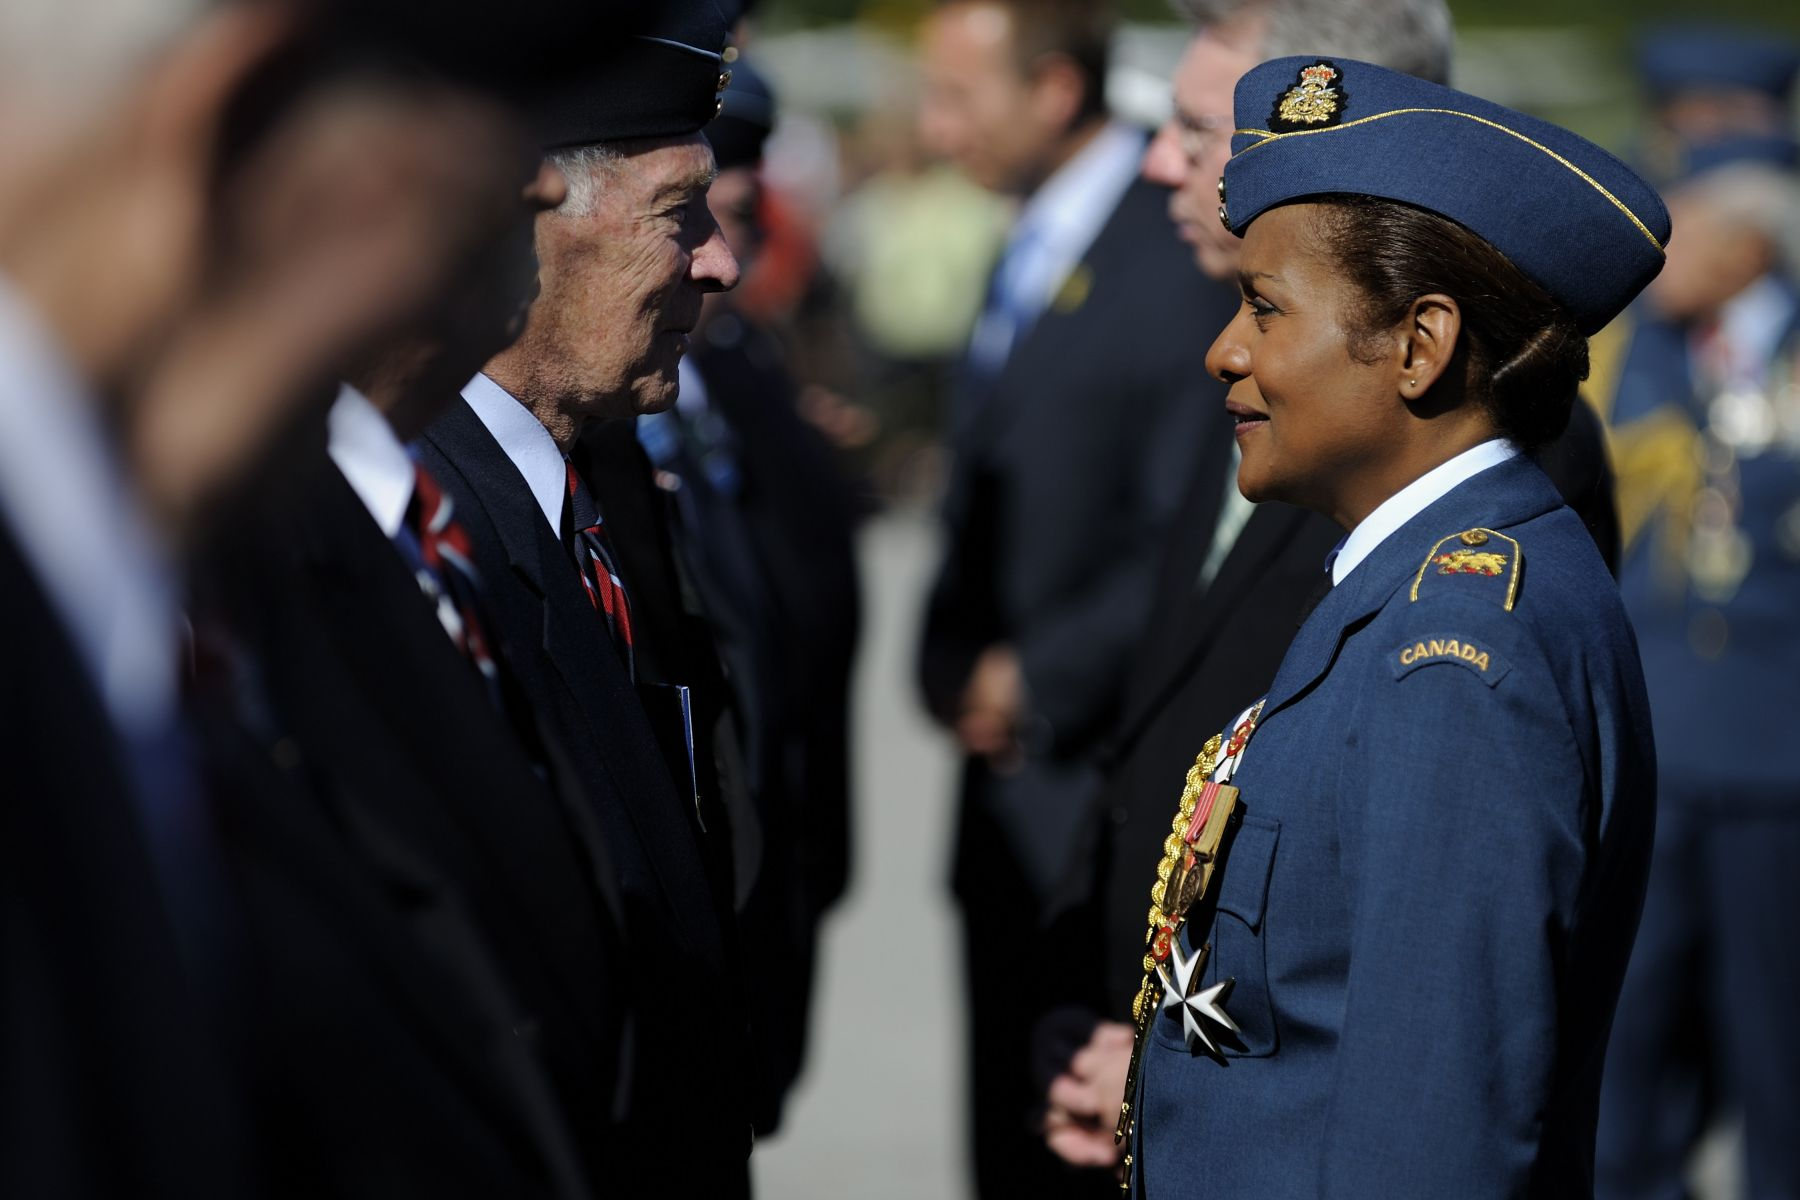 It was the first time that Her Excellency wore the Air Force uniform.